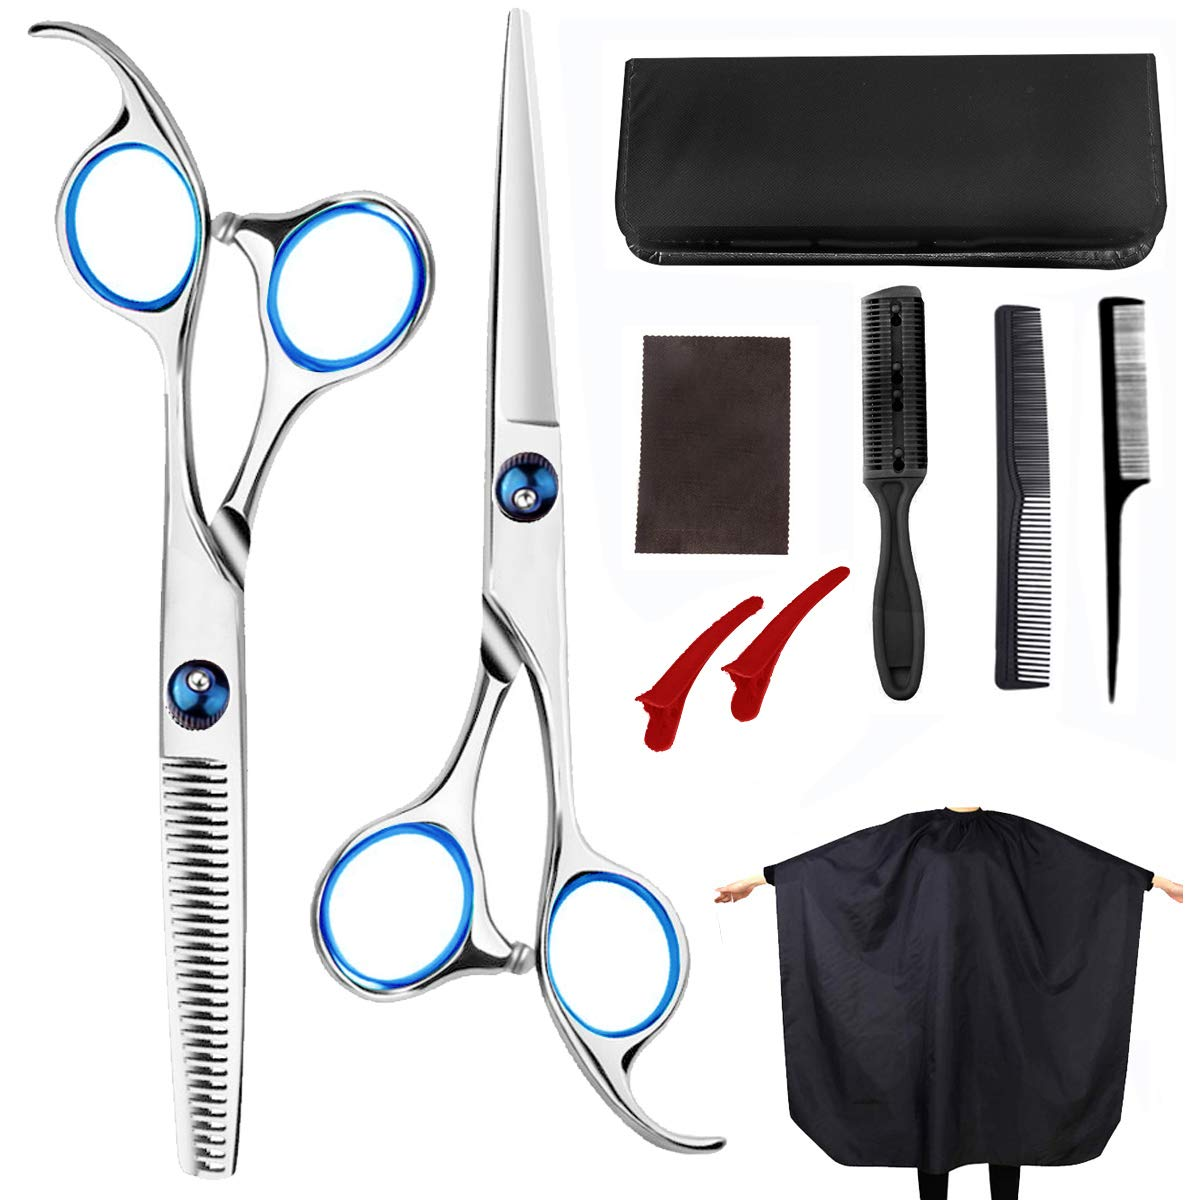 Professional Hair Cutting Scissors 12 PCS 12.12inch Barber Thinning Scissors  Hairdressing Shears Stainless Steel Hair Cutting Shears Set with Cape Clips